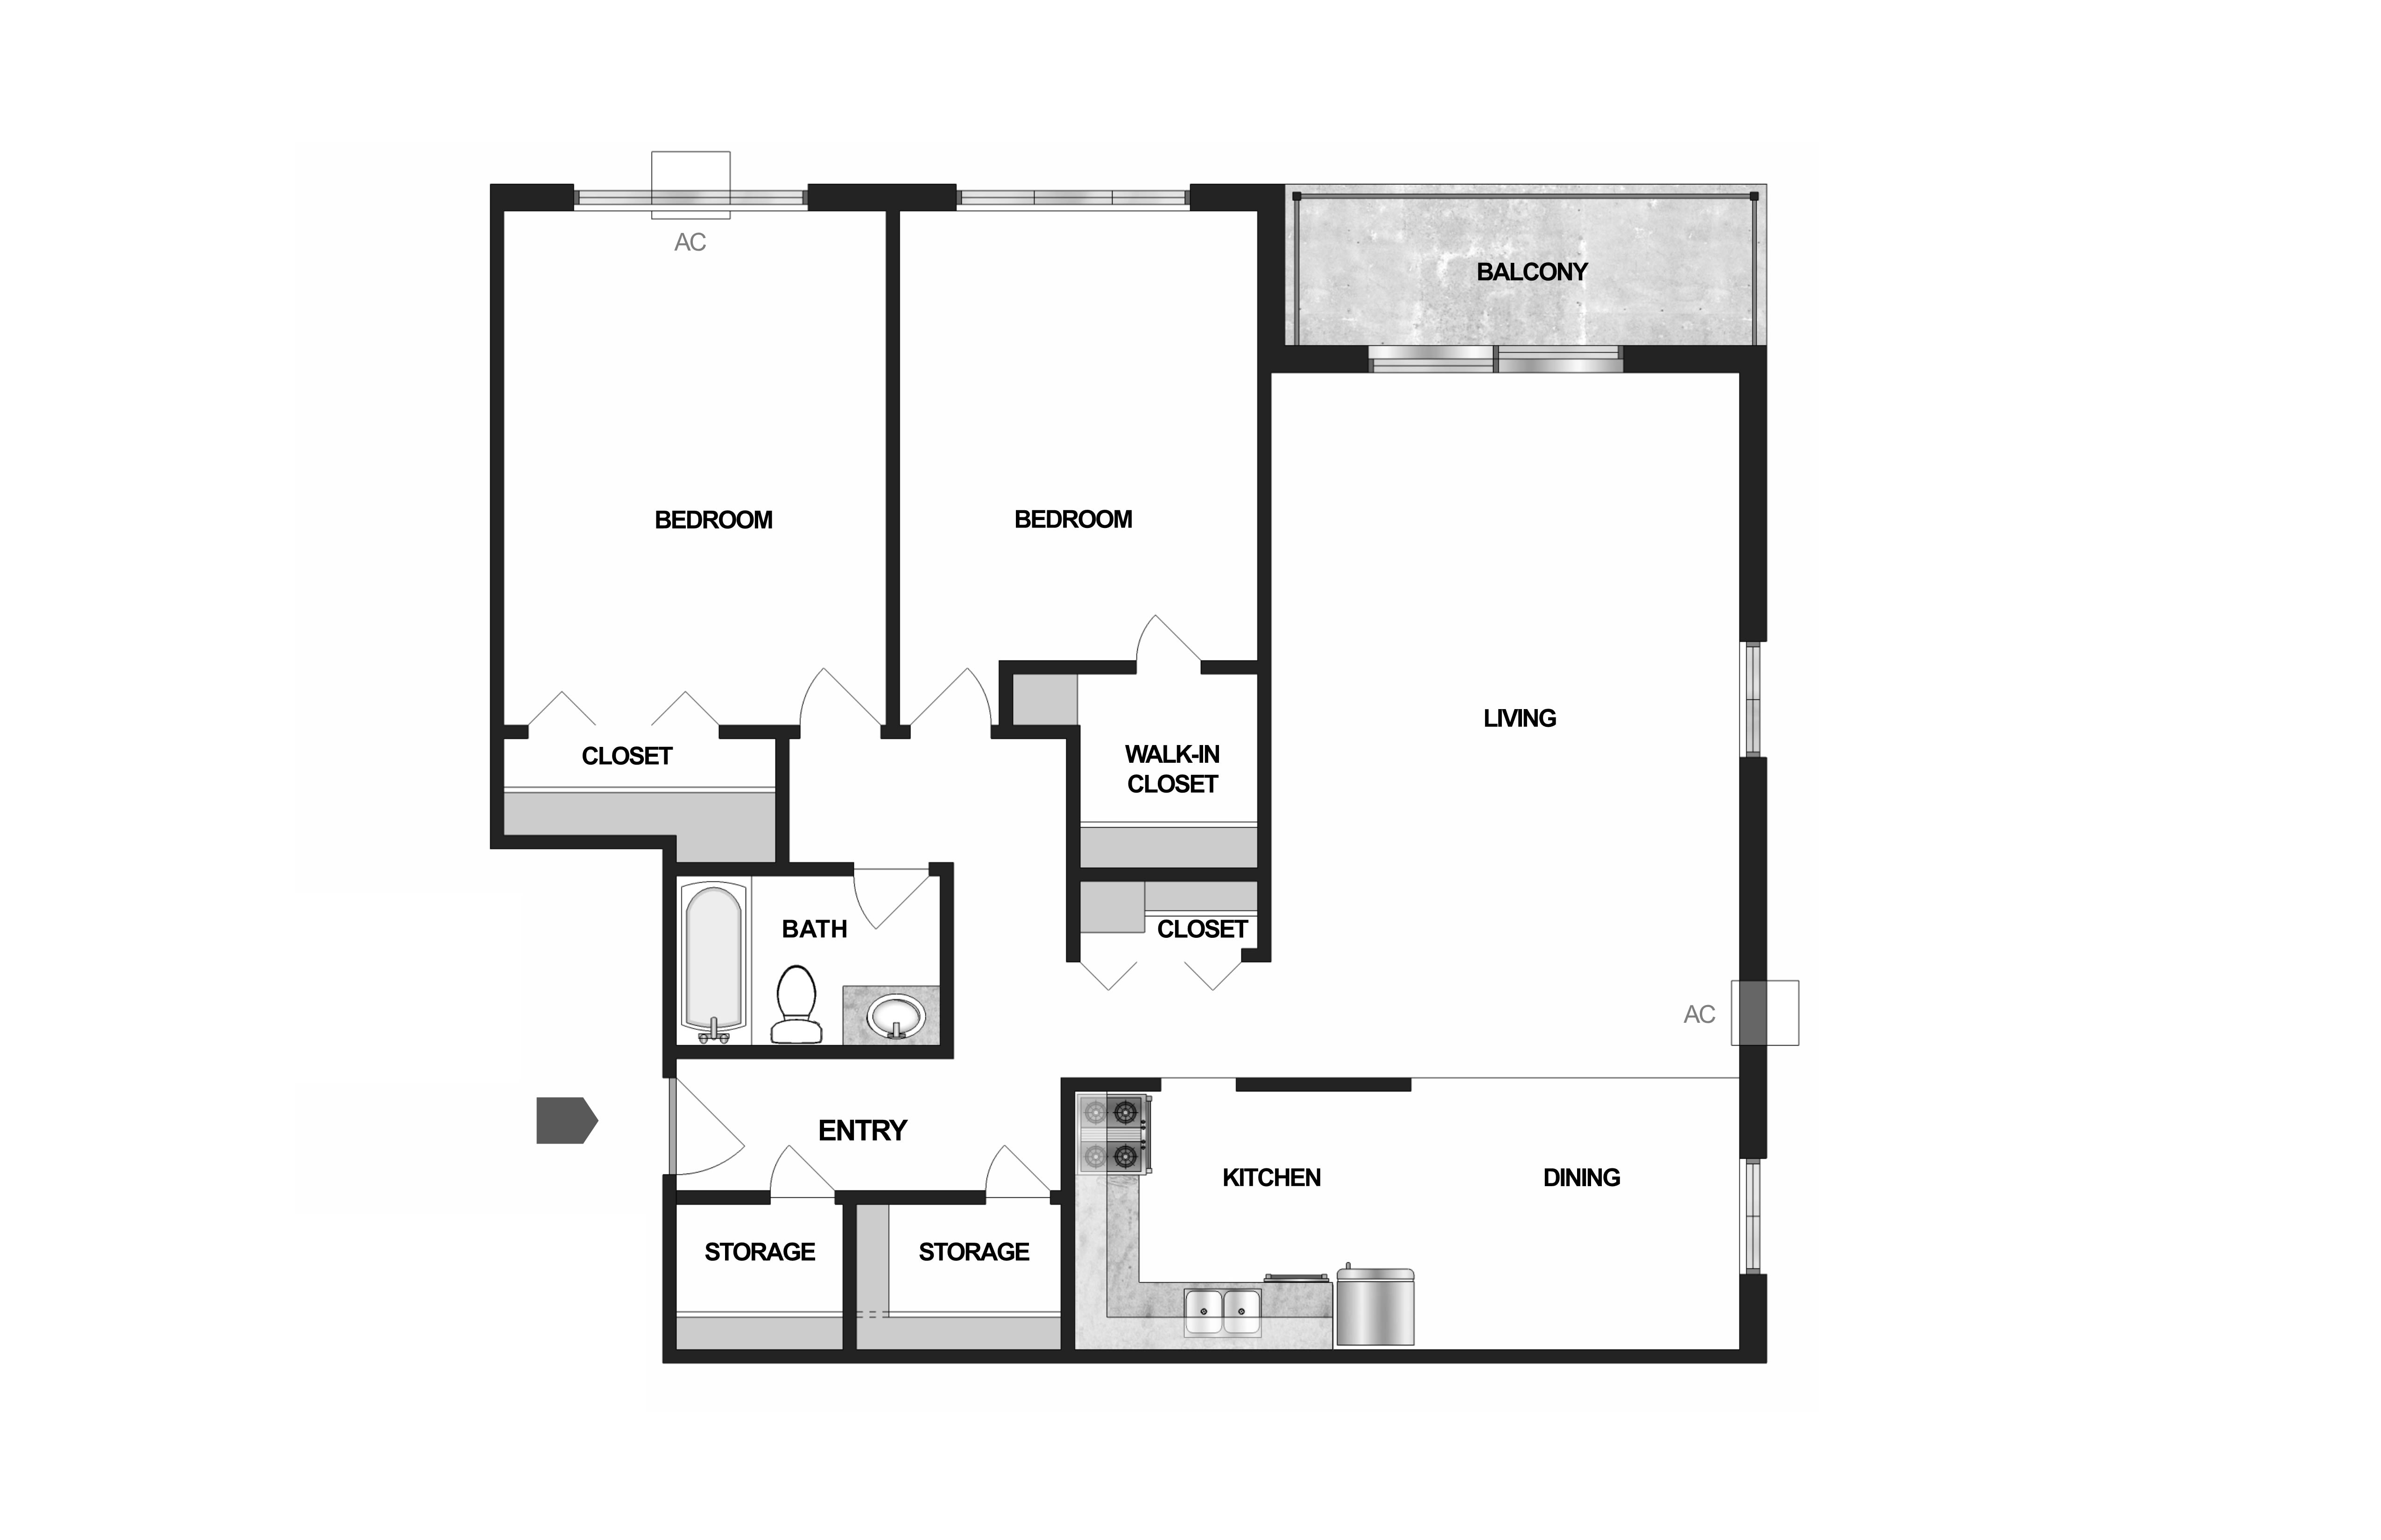 Floor Plan  Villages on McKnight Apartments in North St. Paul 2 Bedroom 1 Bath, opens a dialog